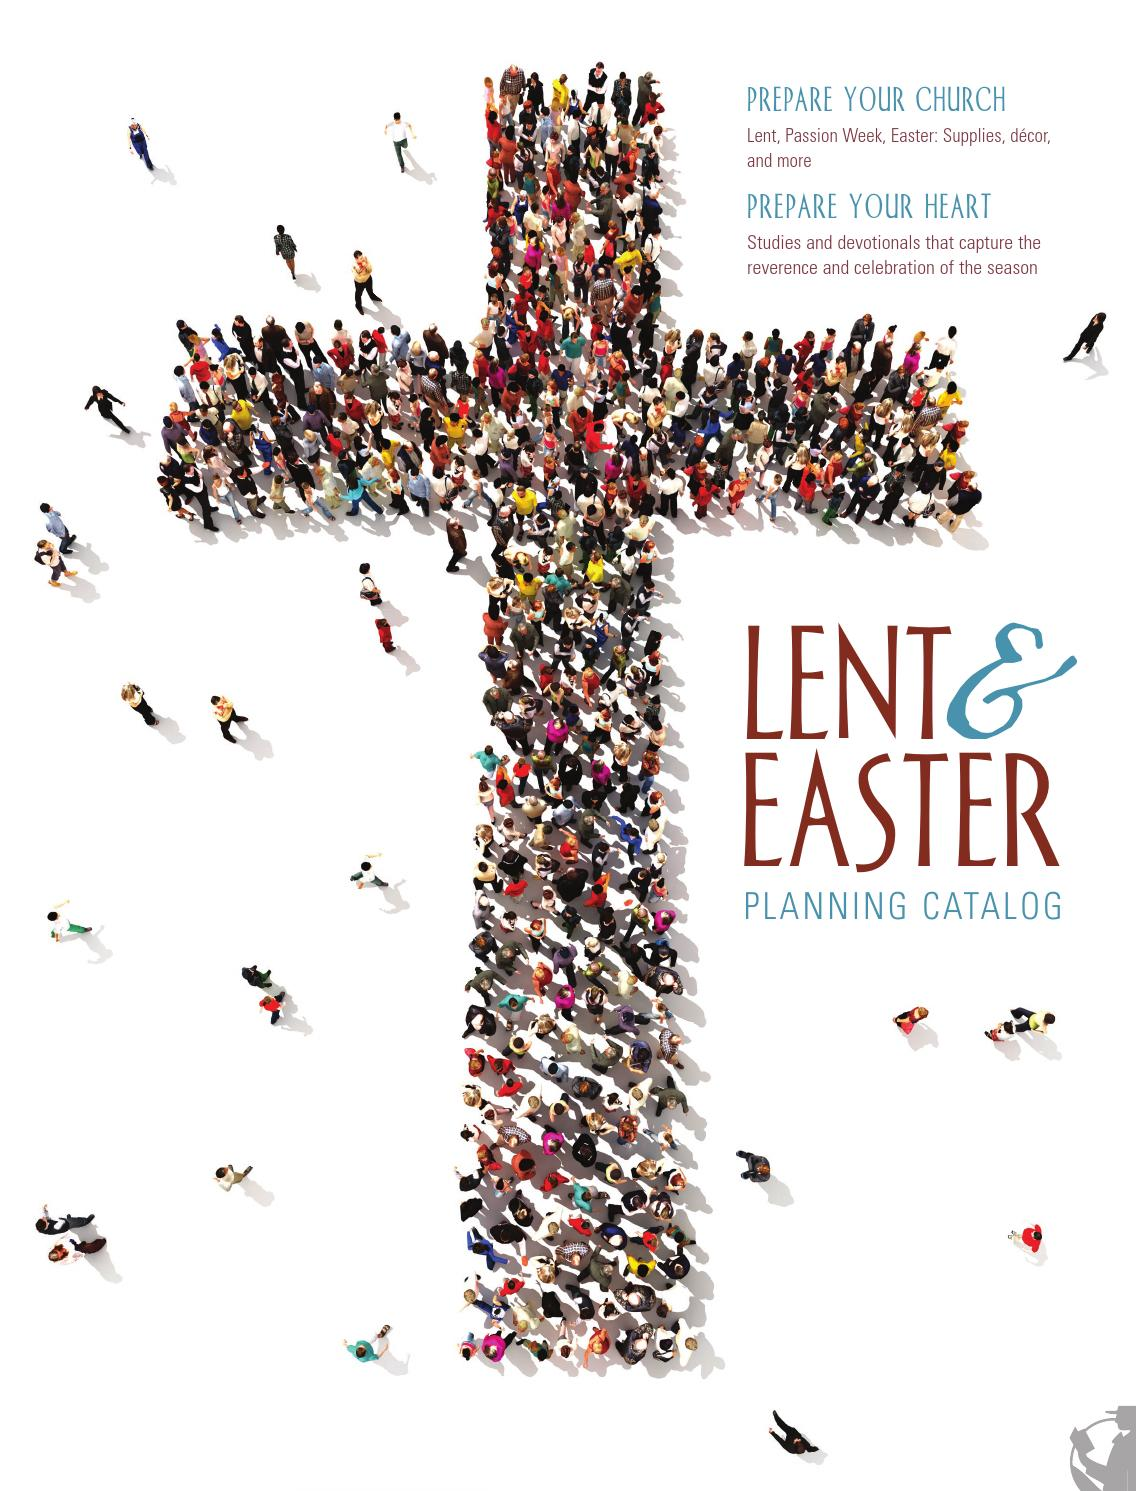 Lent easter planning catalog by united methodist publishing lent easter planning catalog by united methodist publishing house cokesbury issuu biocorpaavc